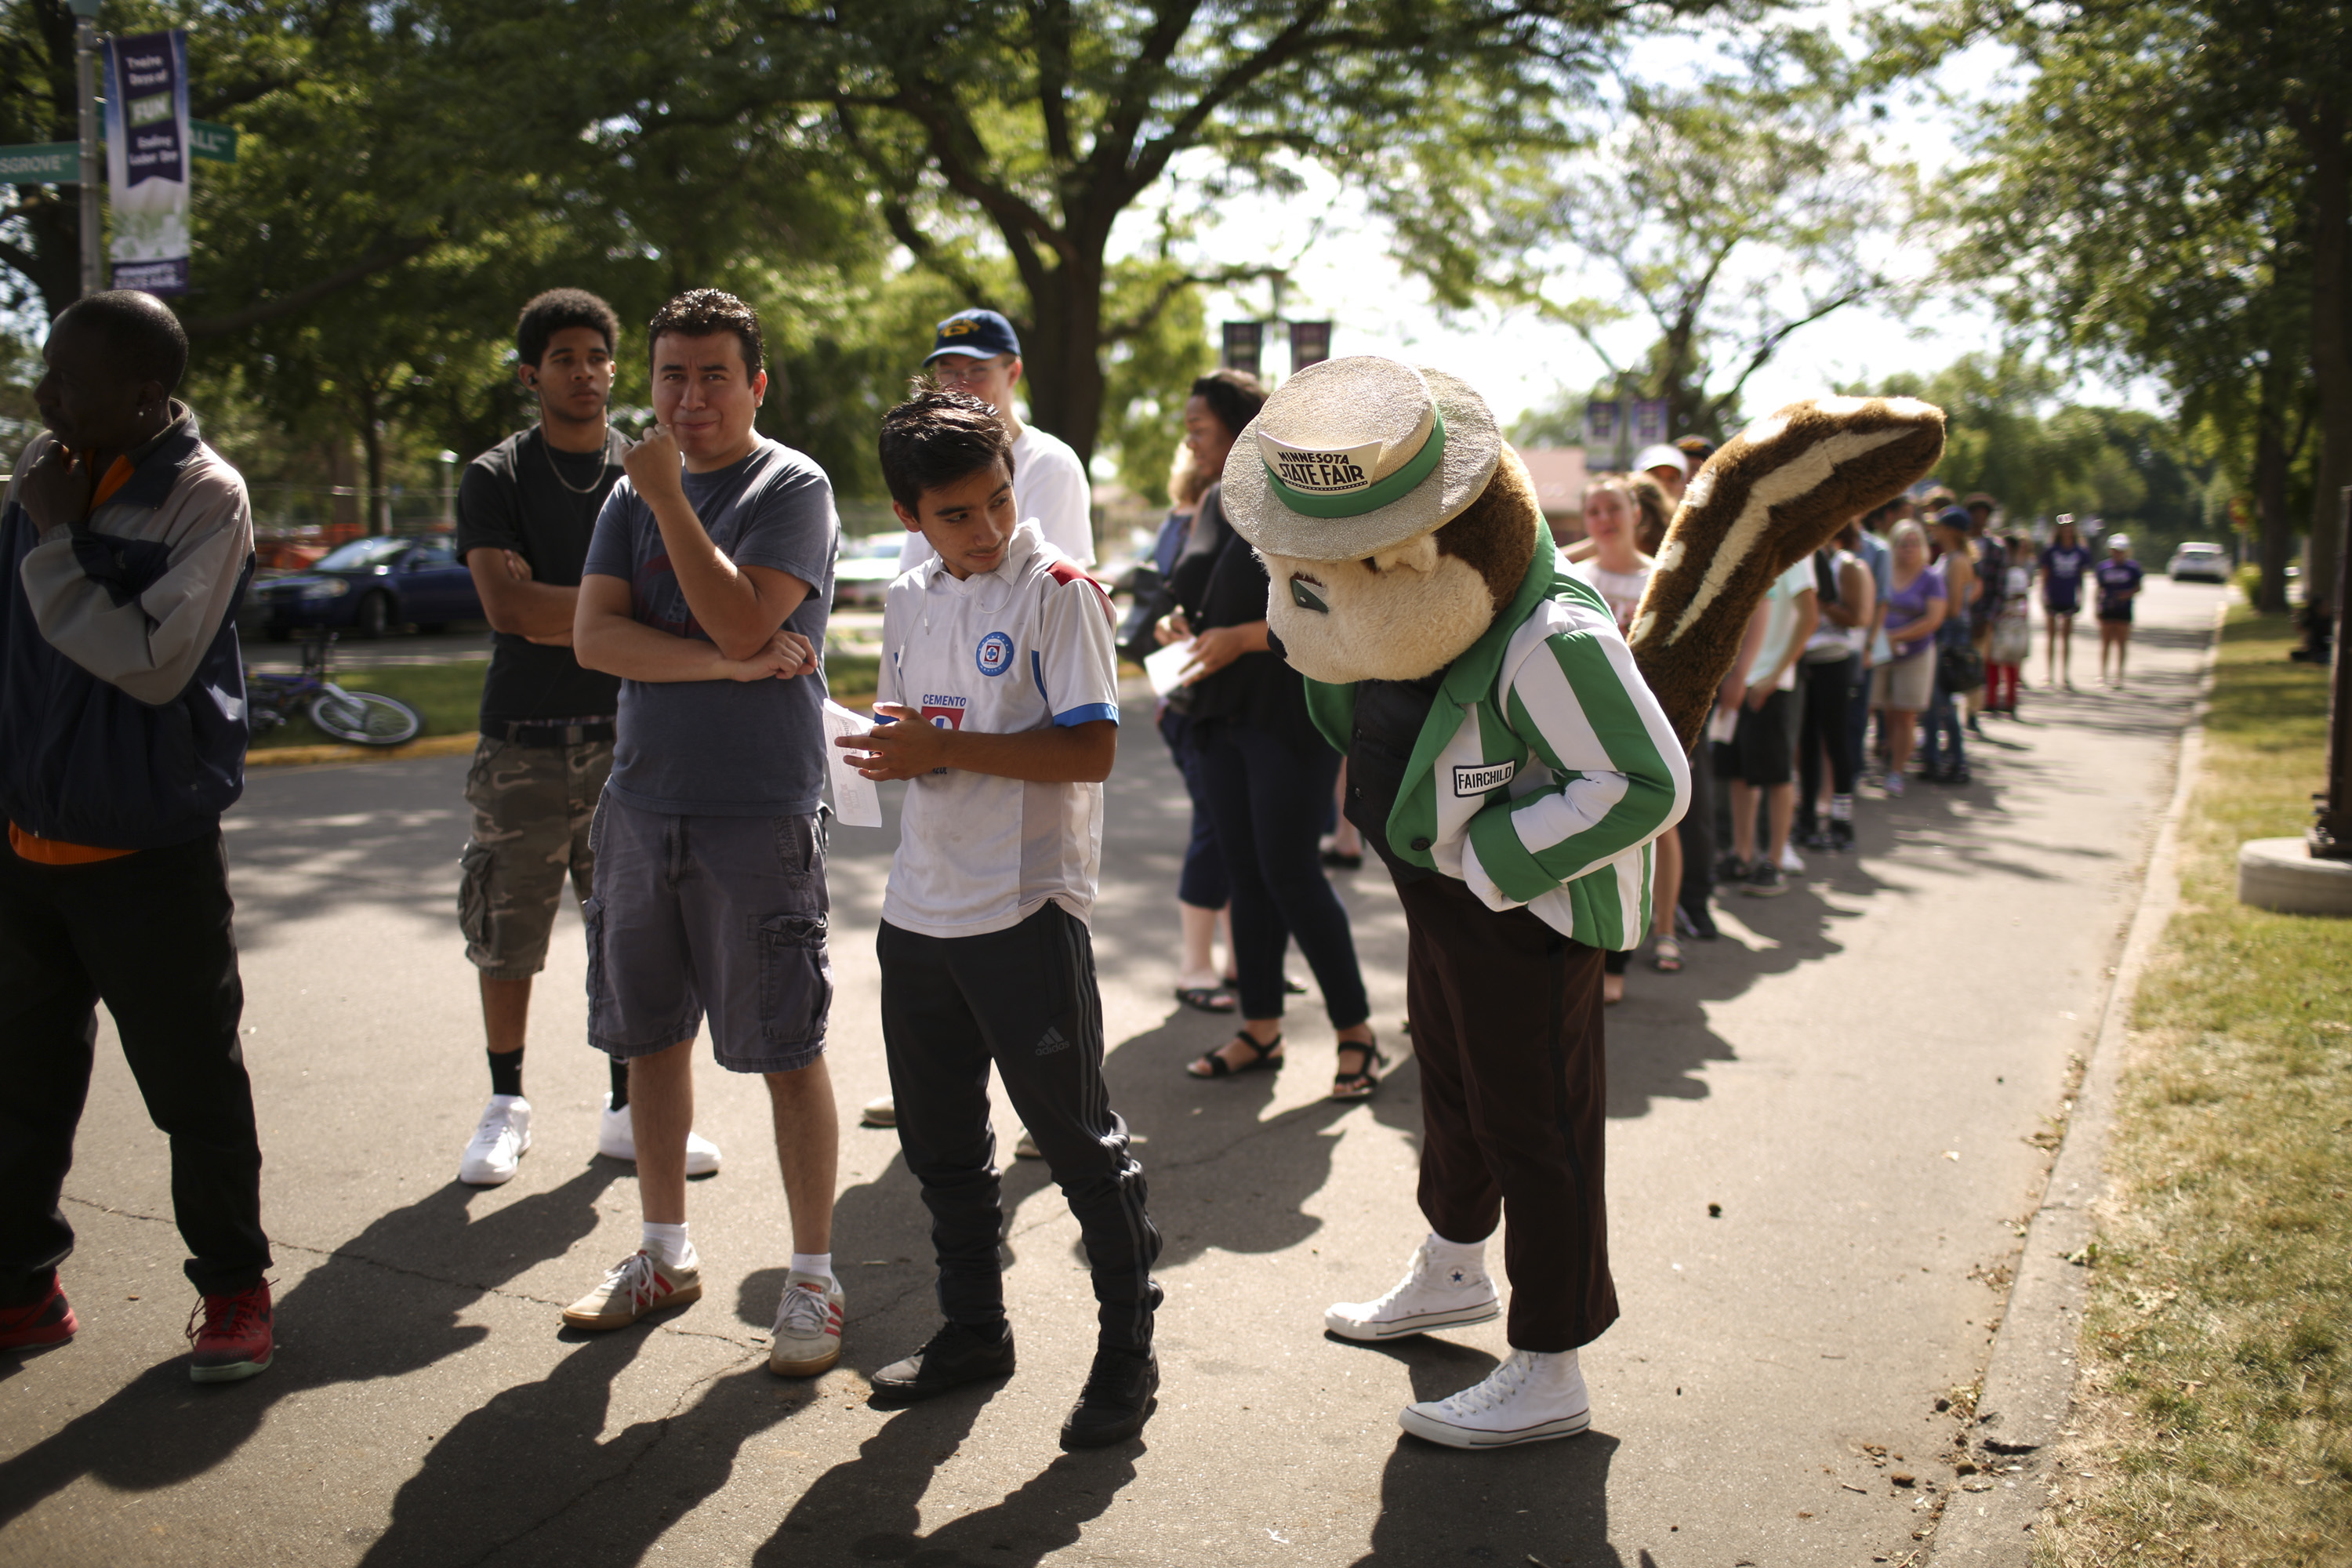 The tail of State Fair mascot Fairchild is striped, a telltale sign that what you're seeing is not a gopher.